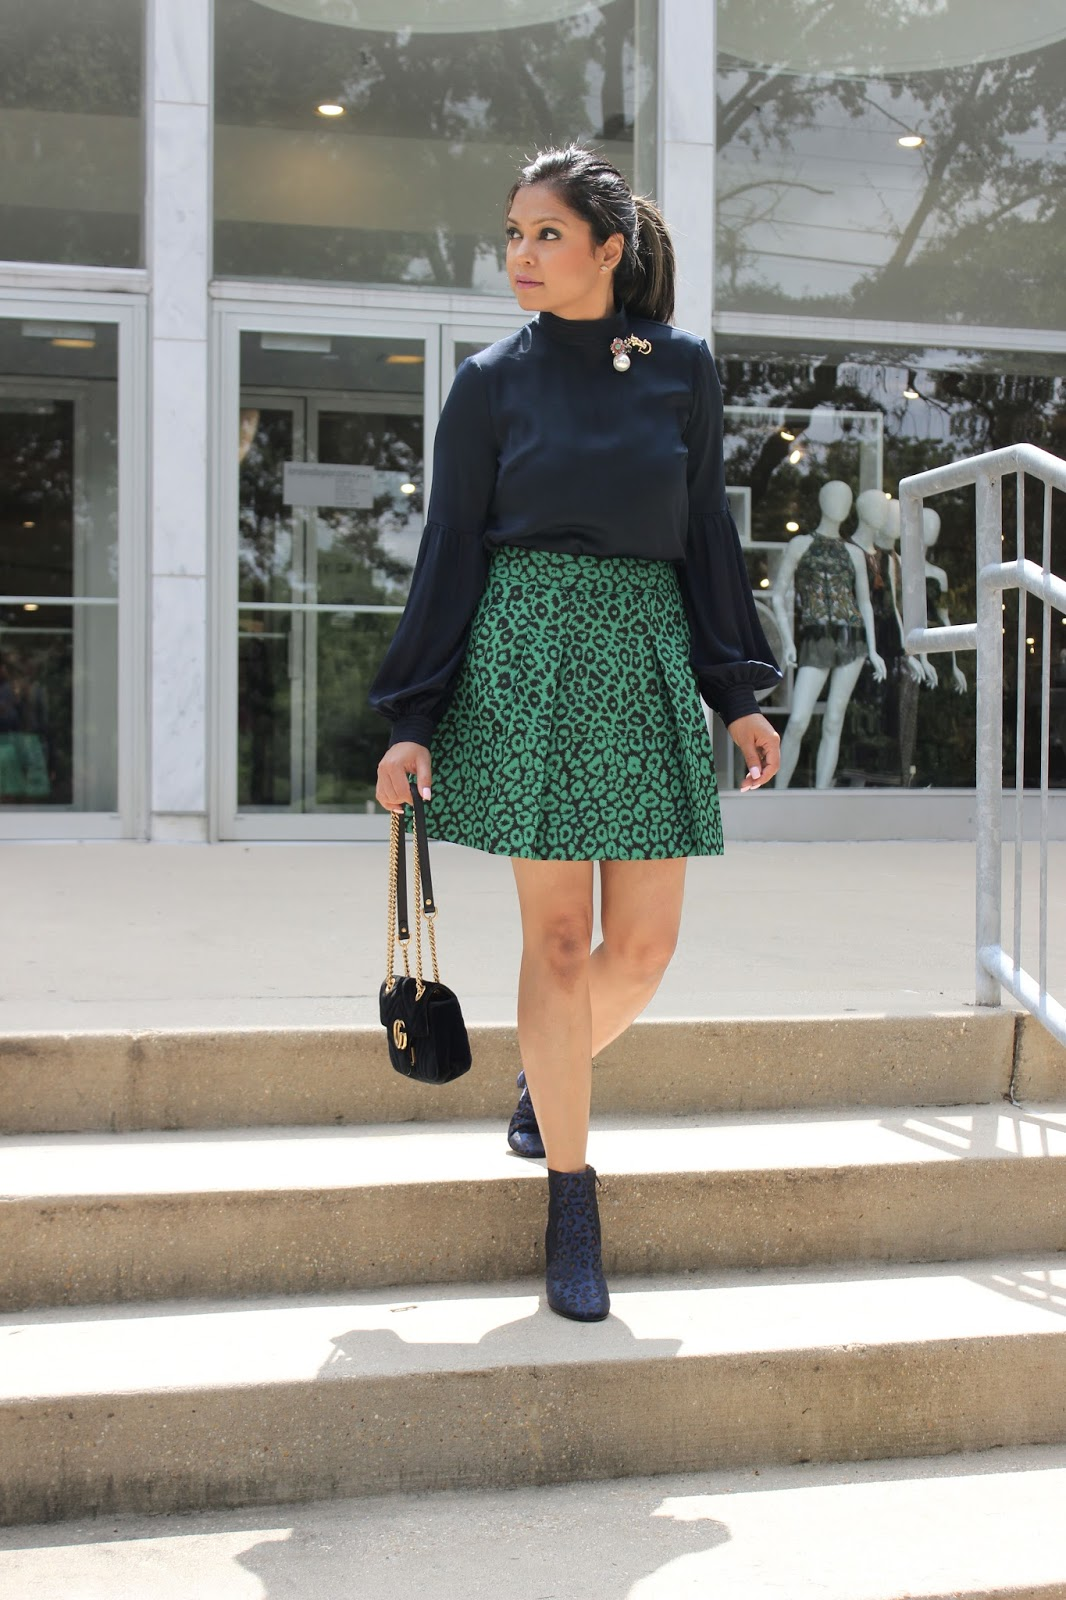 how to wear animal print, leopard on leopard print, fashion, style, trend talk, street style, outfit of the day, sleek , myriad musings, saumya shiohare .